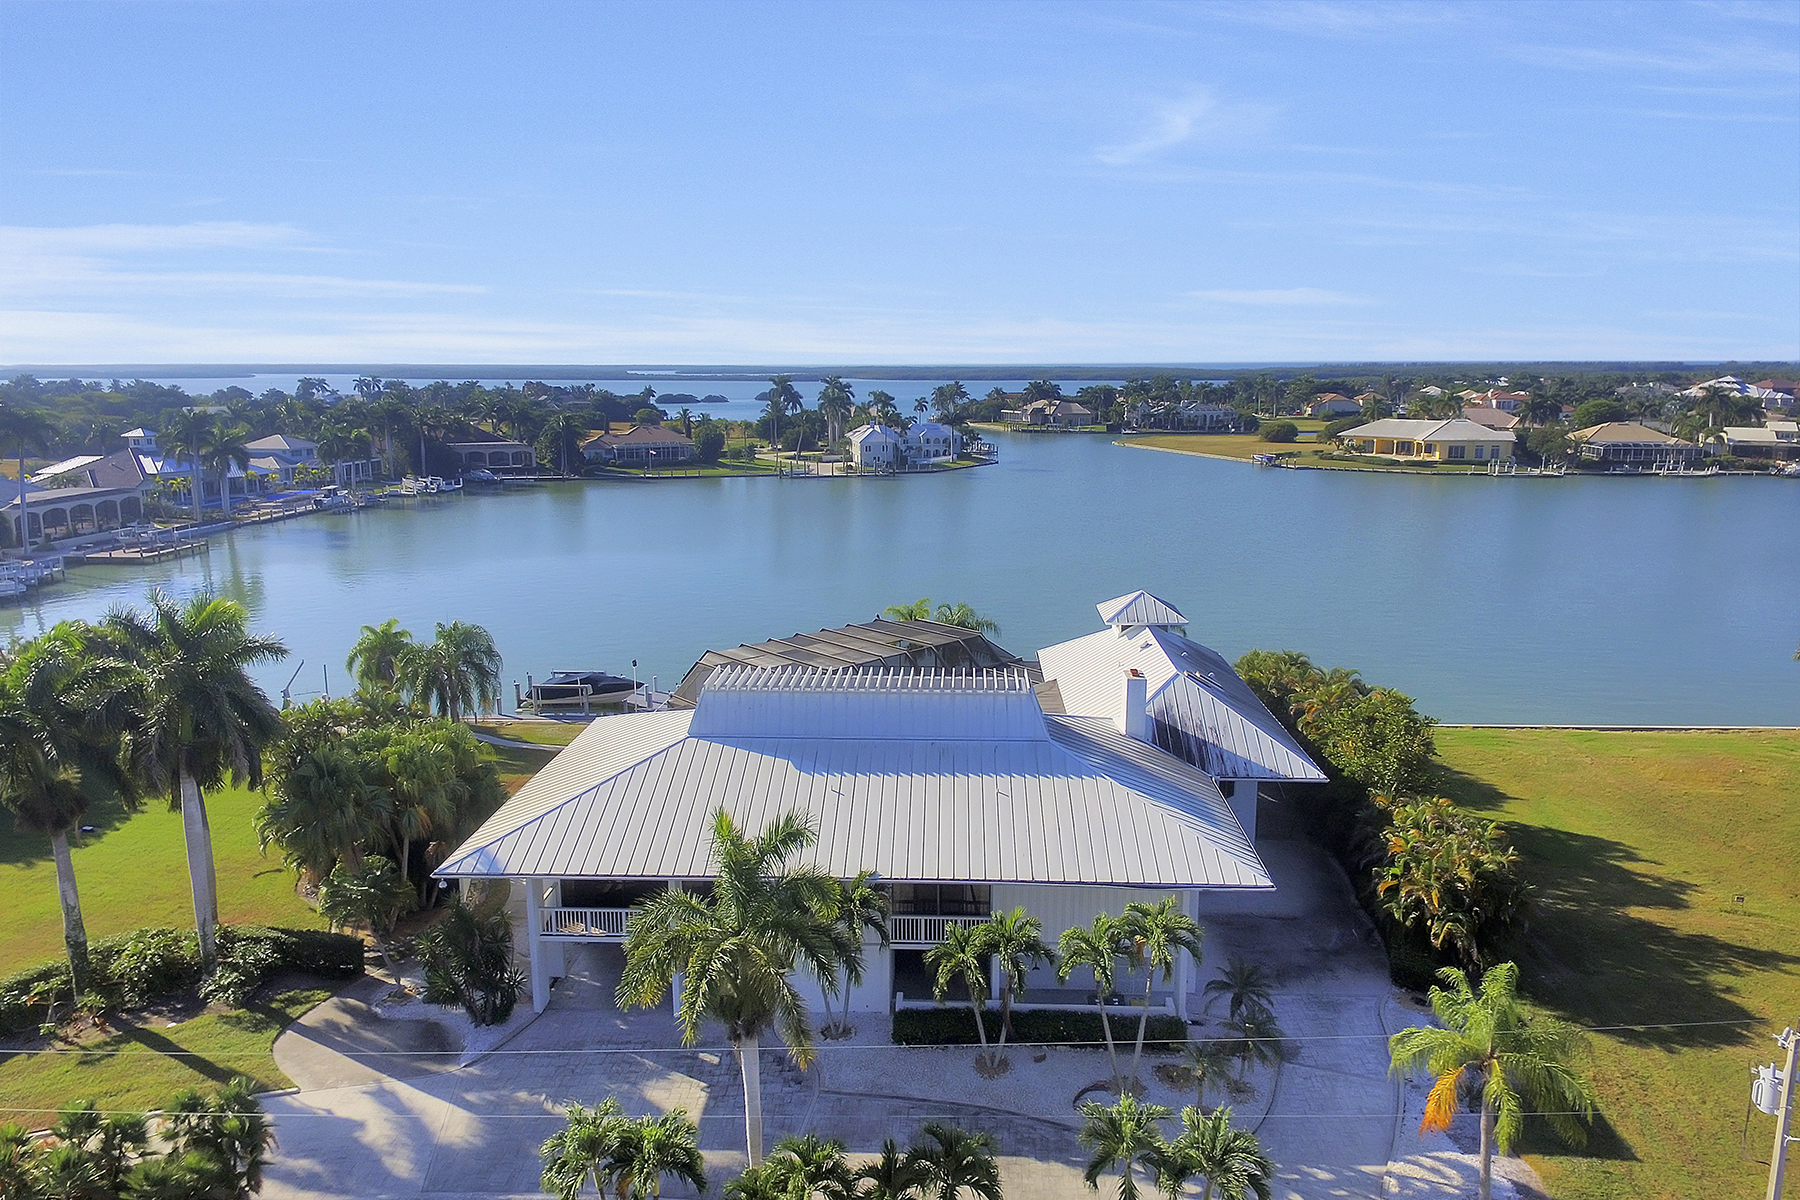 Single Family Home for Sale at MARCO ISLAND - LUDLOW 1751 Ludlow Rd, Marco Island, Florida 34145 United States